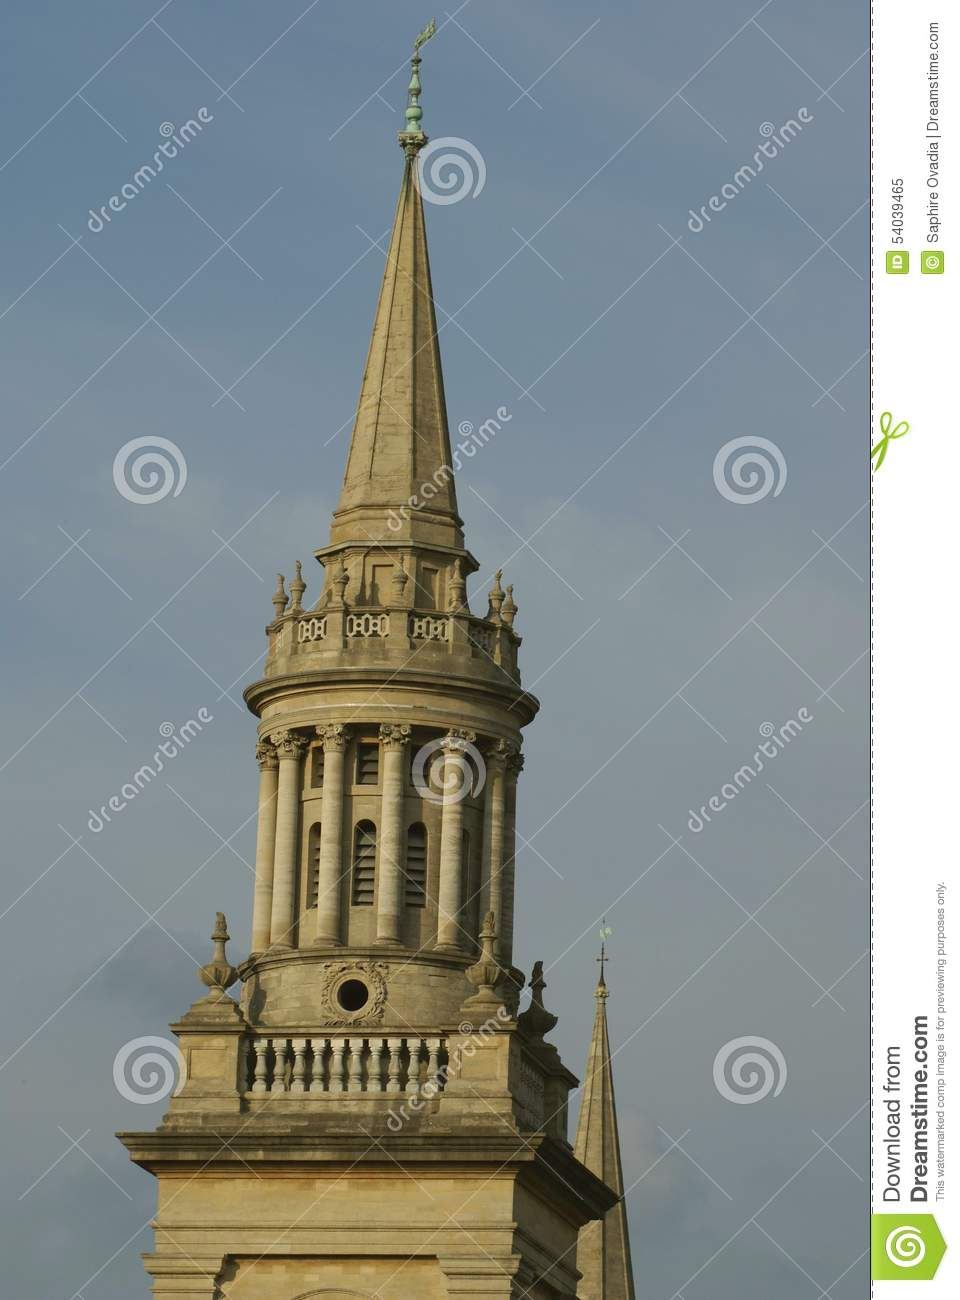 The Bell Tower Of All Saints Church In Oxford, England Stock Photo.